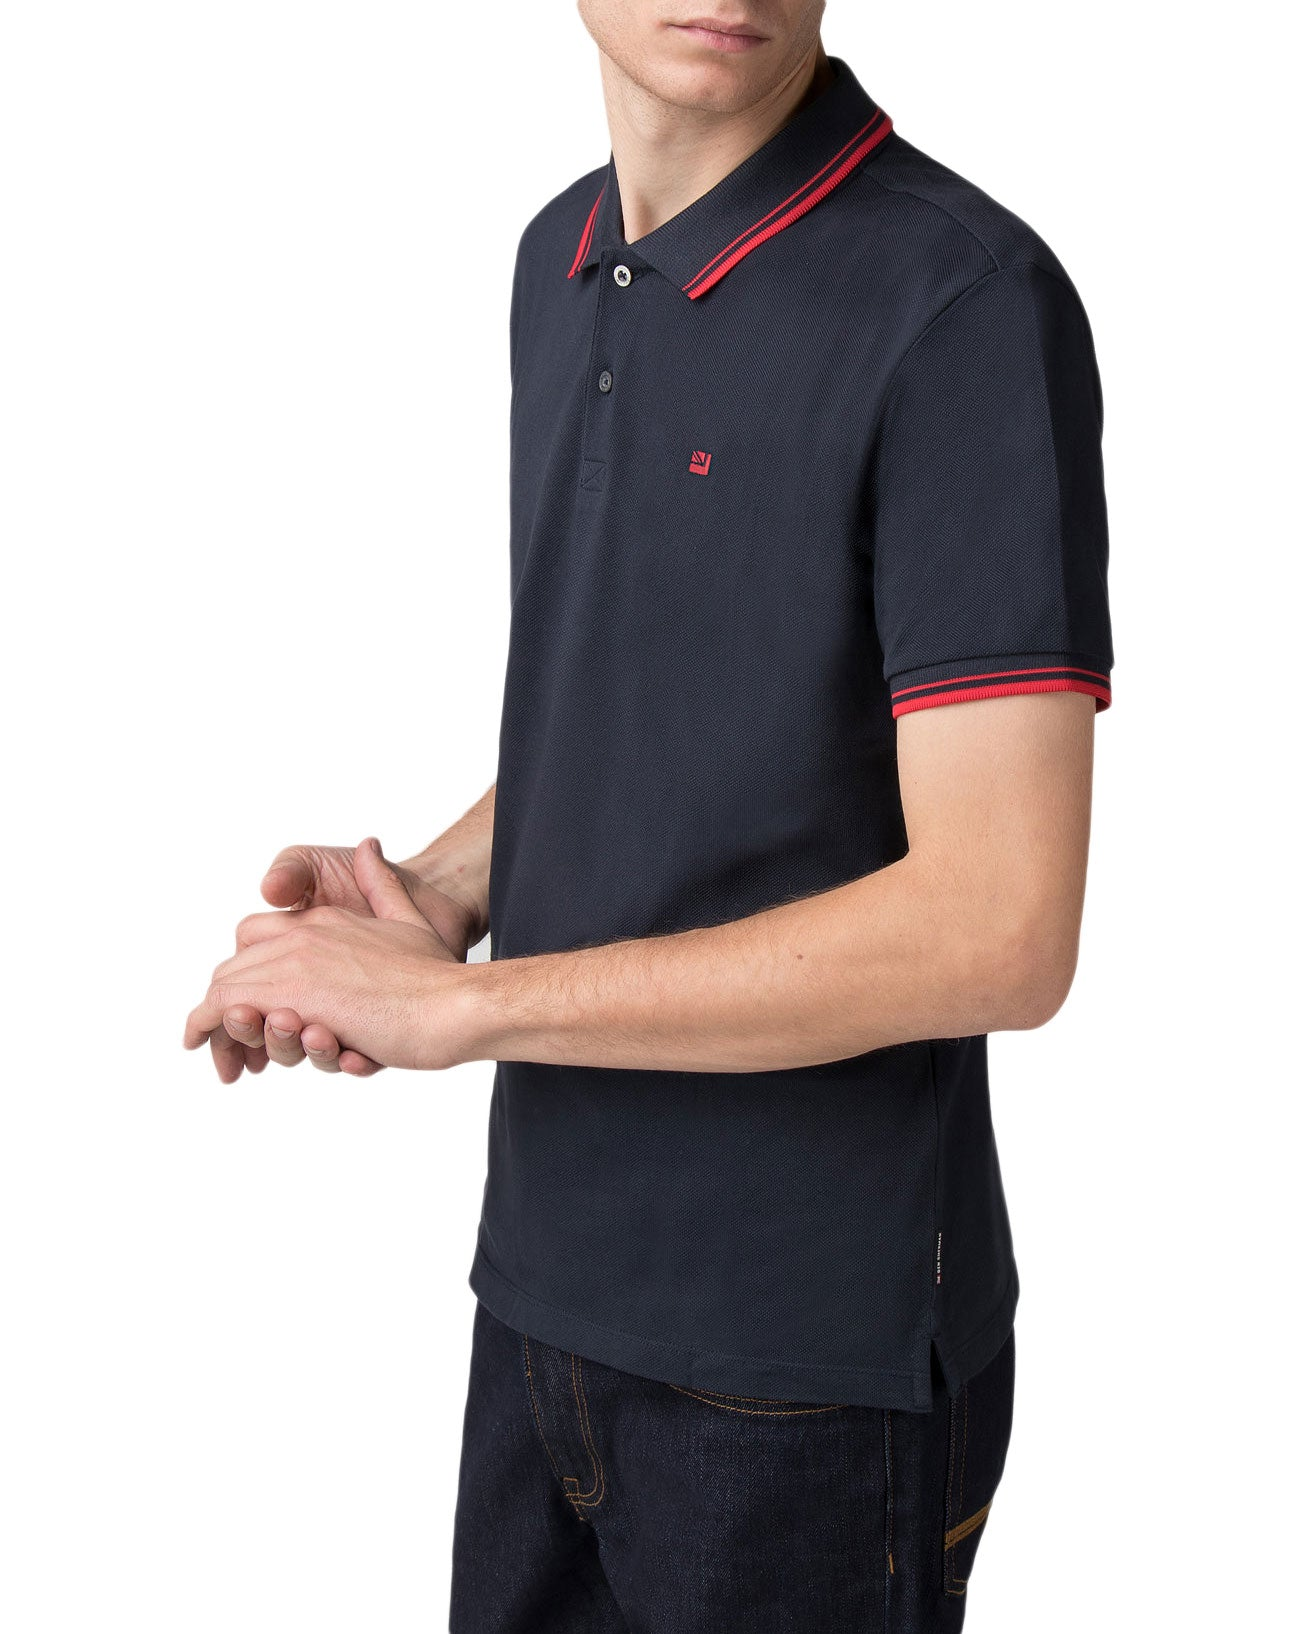 Romford Polo Shirt - Staples Navy